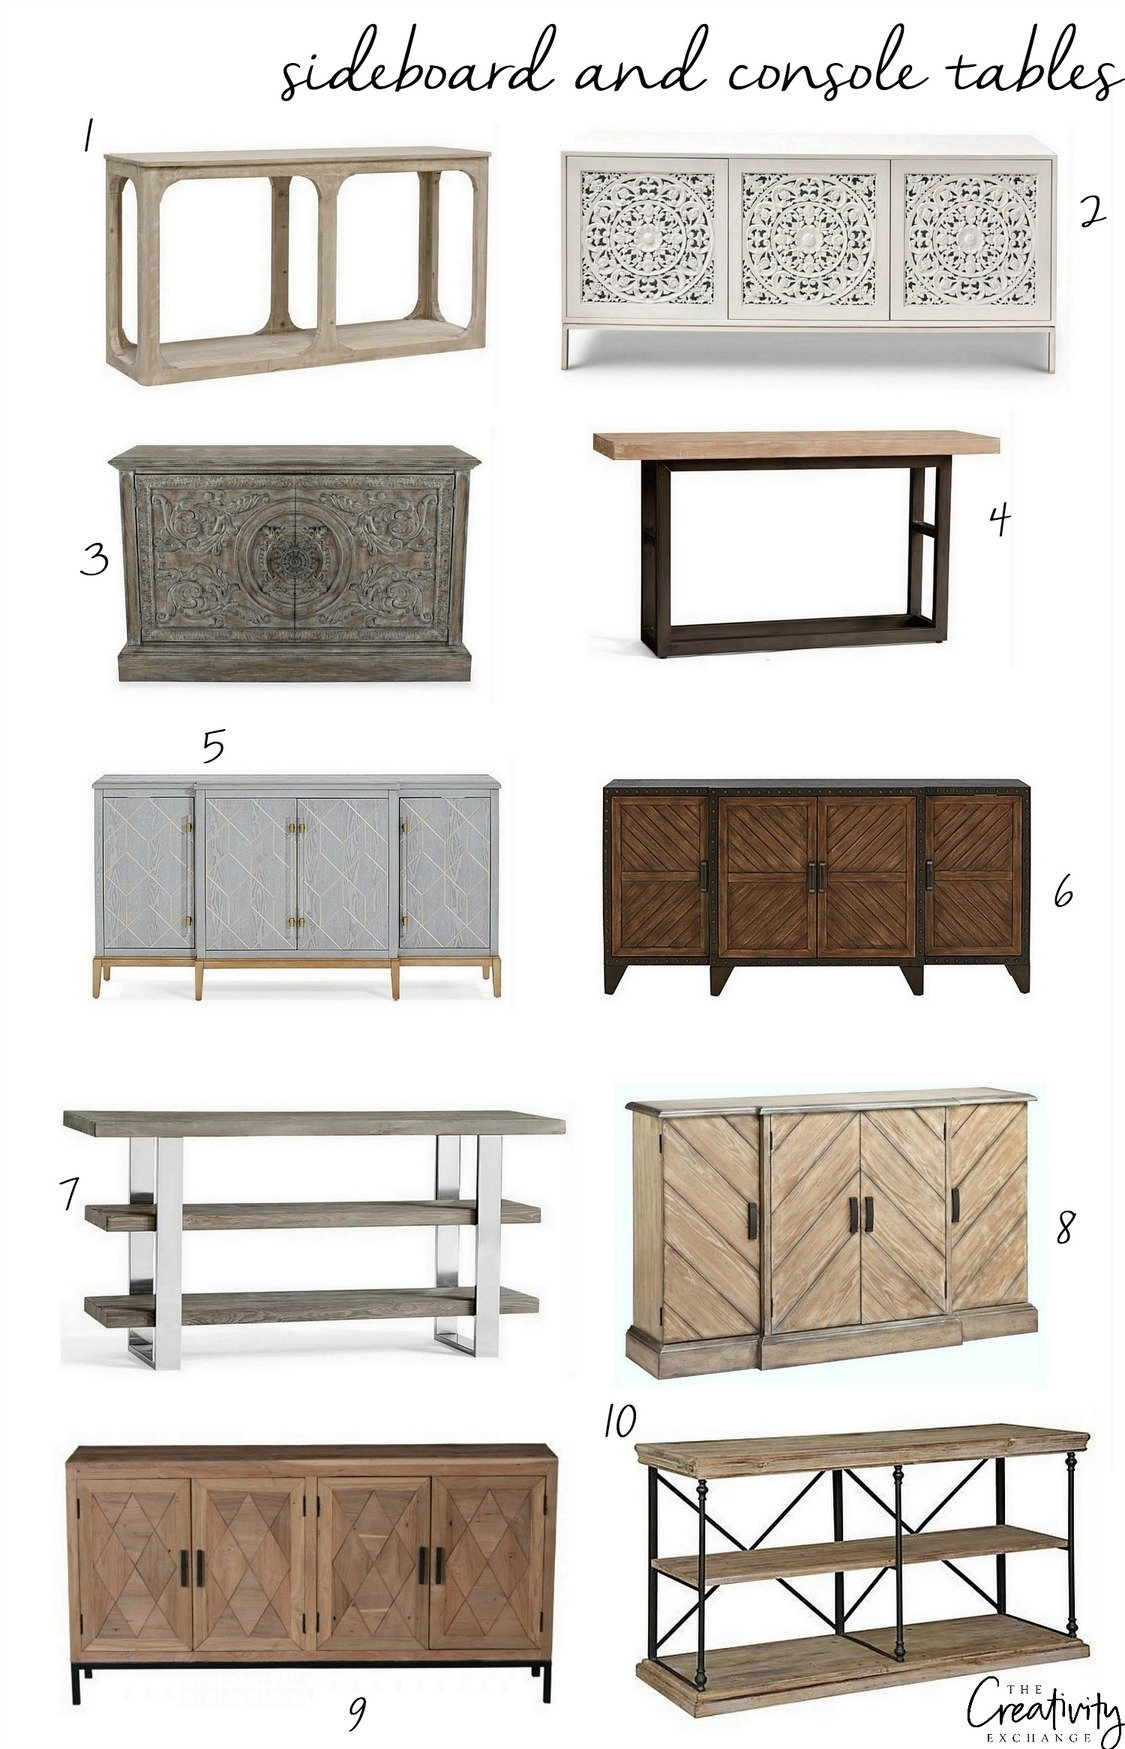 Sideboard and console tables